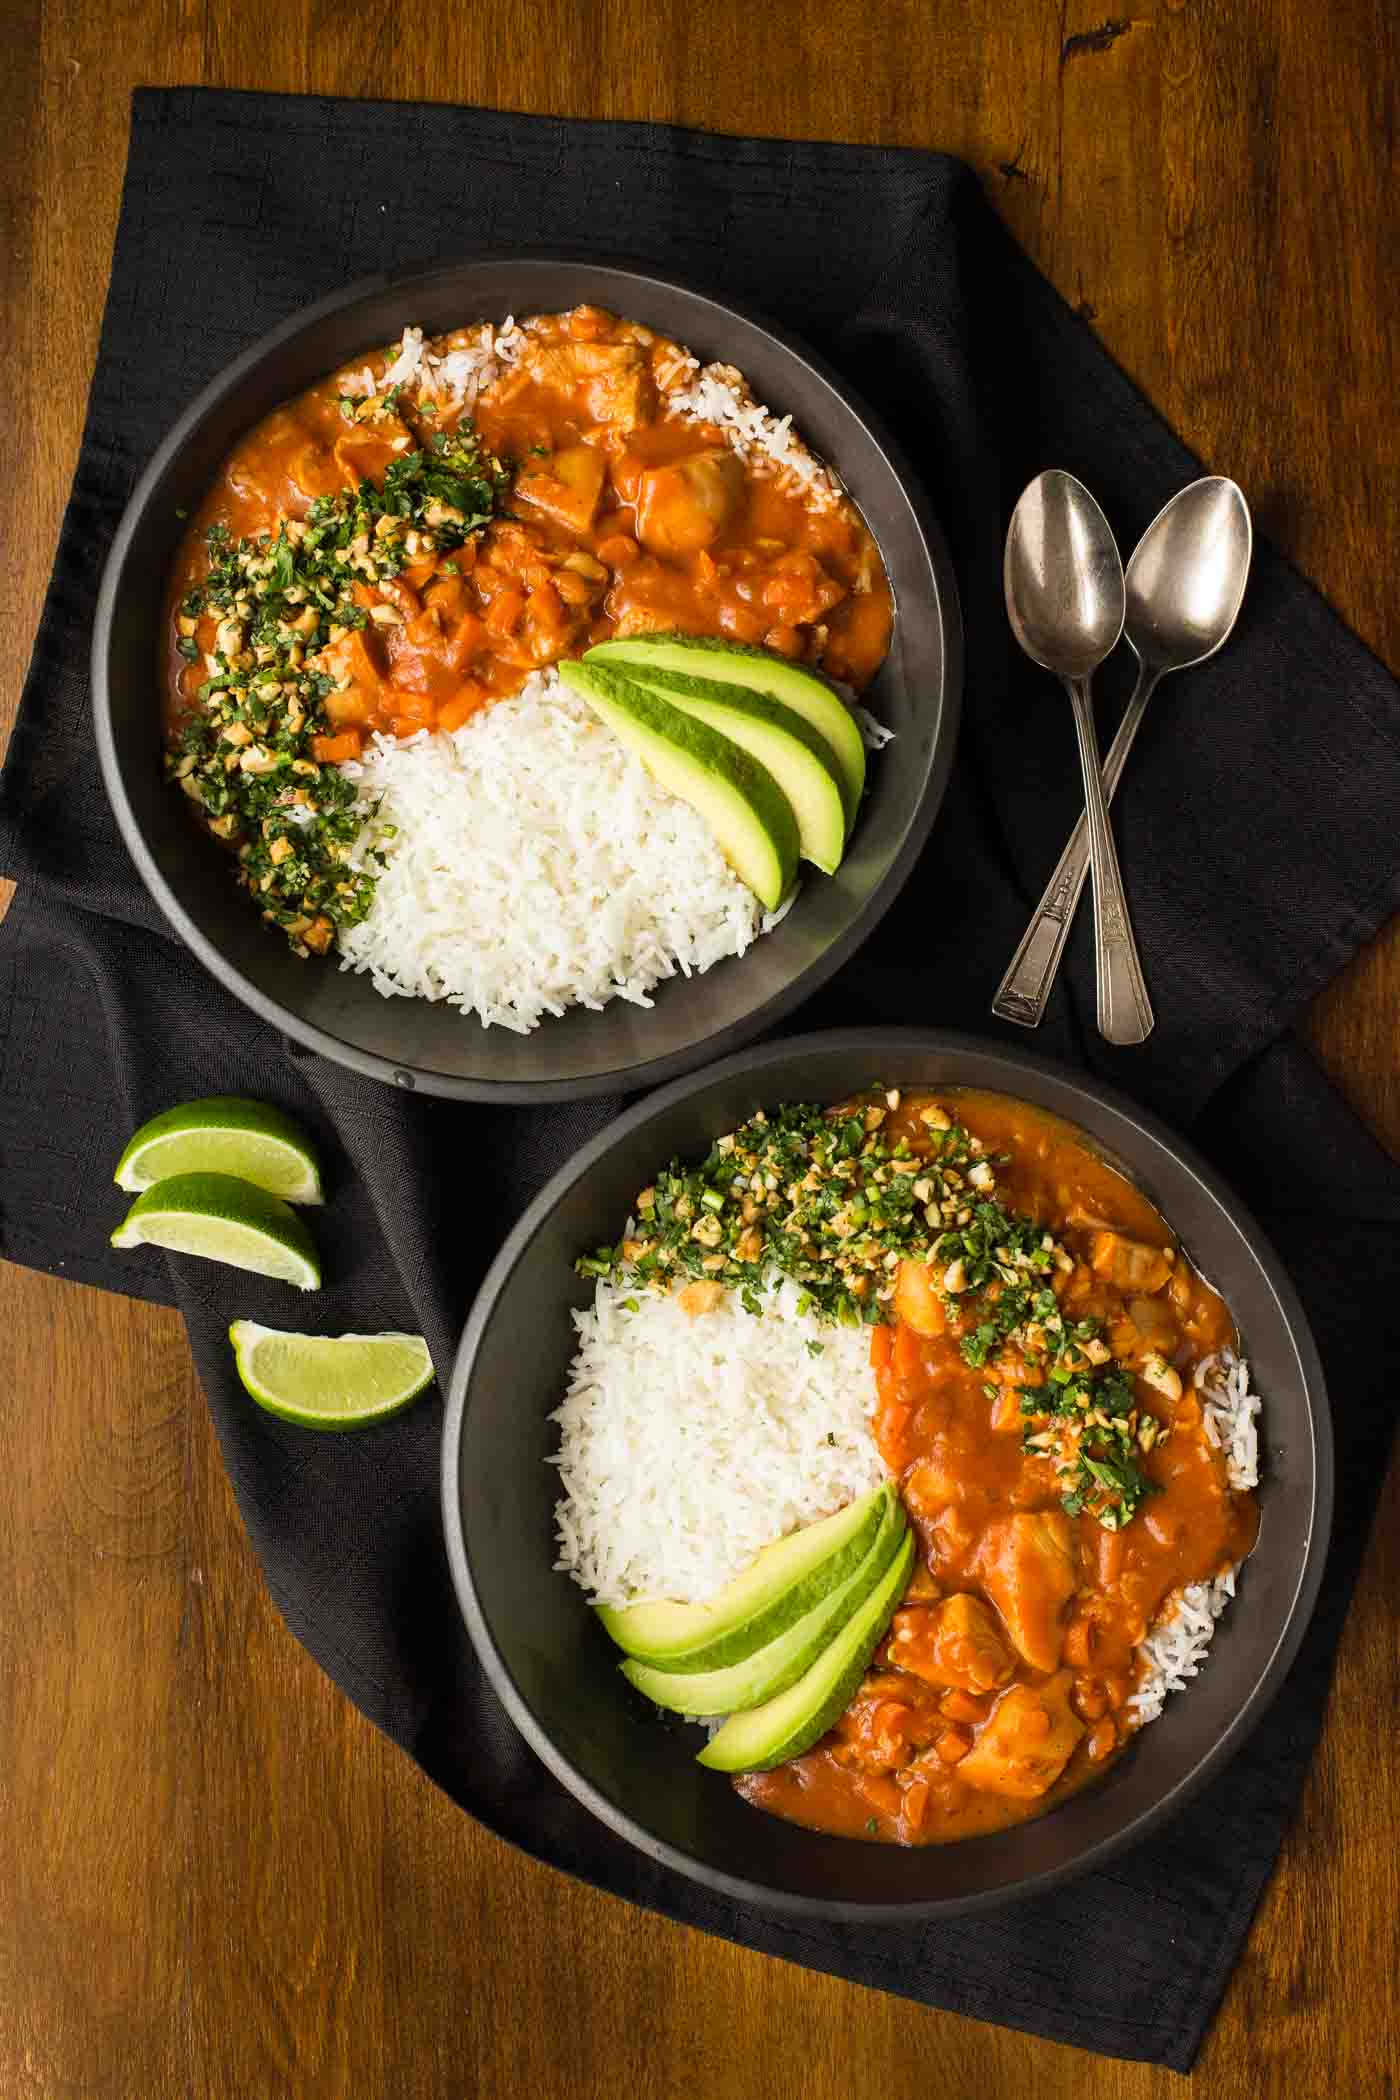 Slow cooker indian butter chicken the caf sucre farine - Herve cuisine butter chicken ...